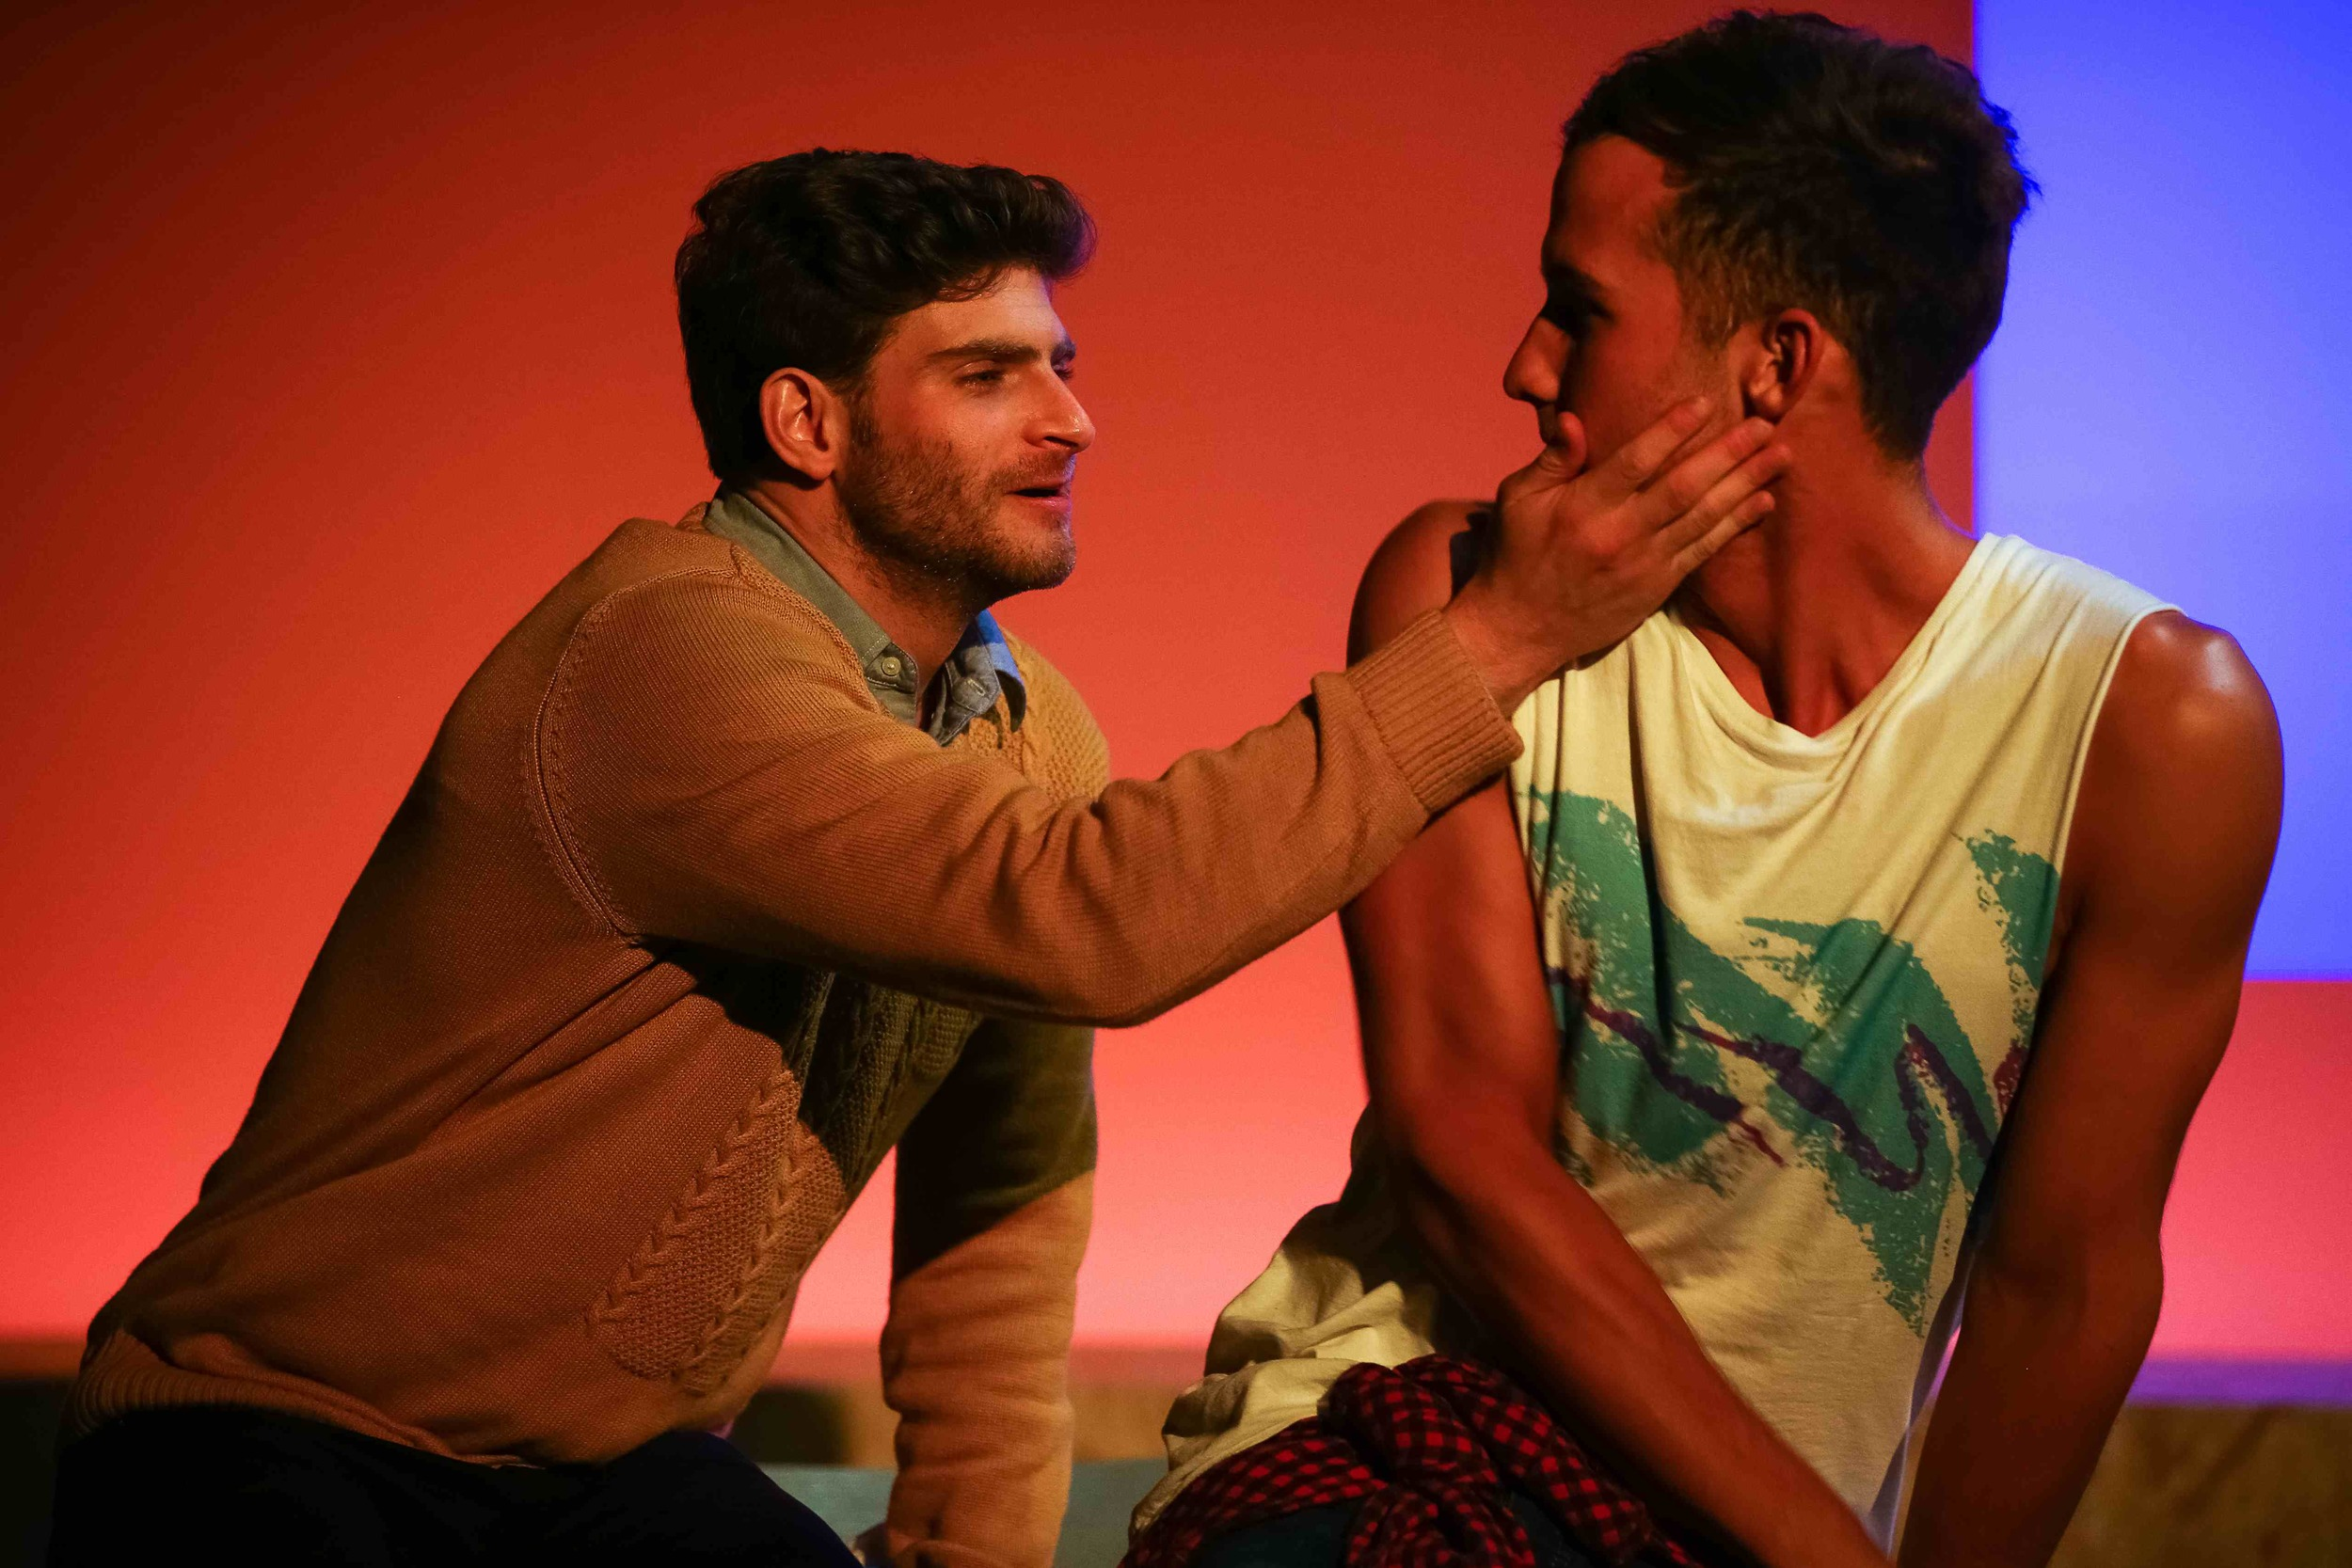 'Reagan Kelly' by Lewis Treston @ NIDA 2015 dir. Ben Schostakowski. With Nicholas Hasemann.